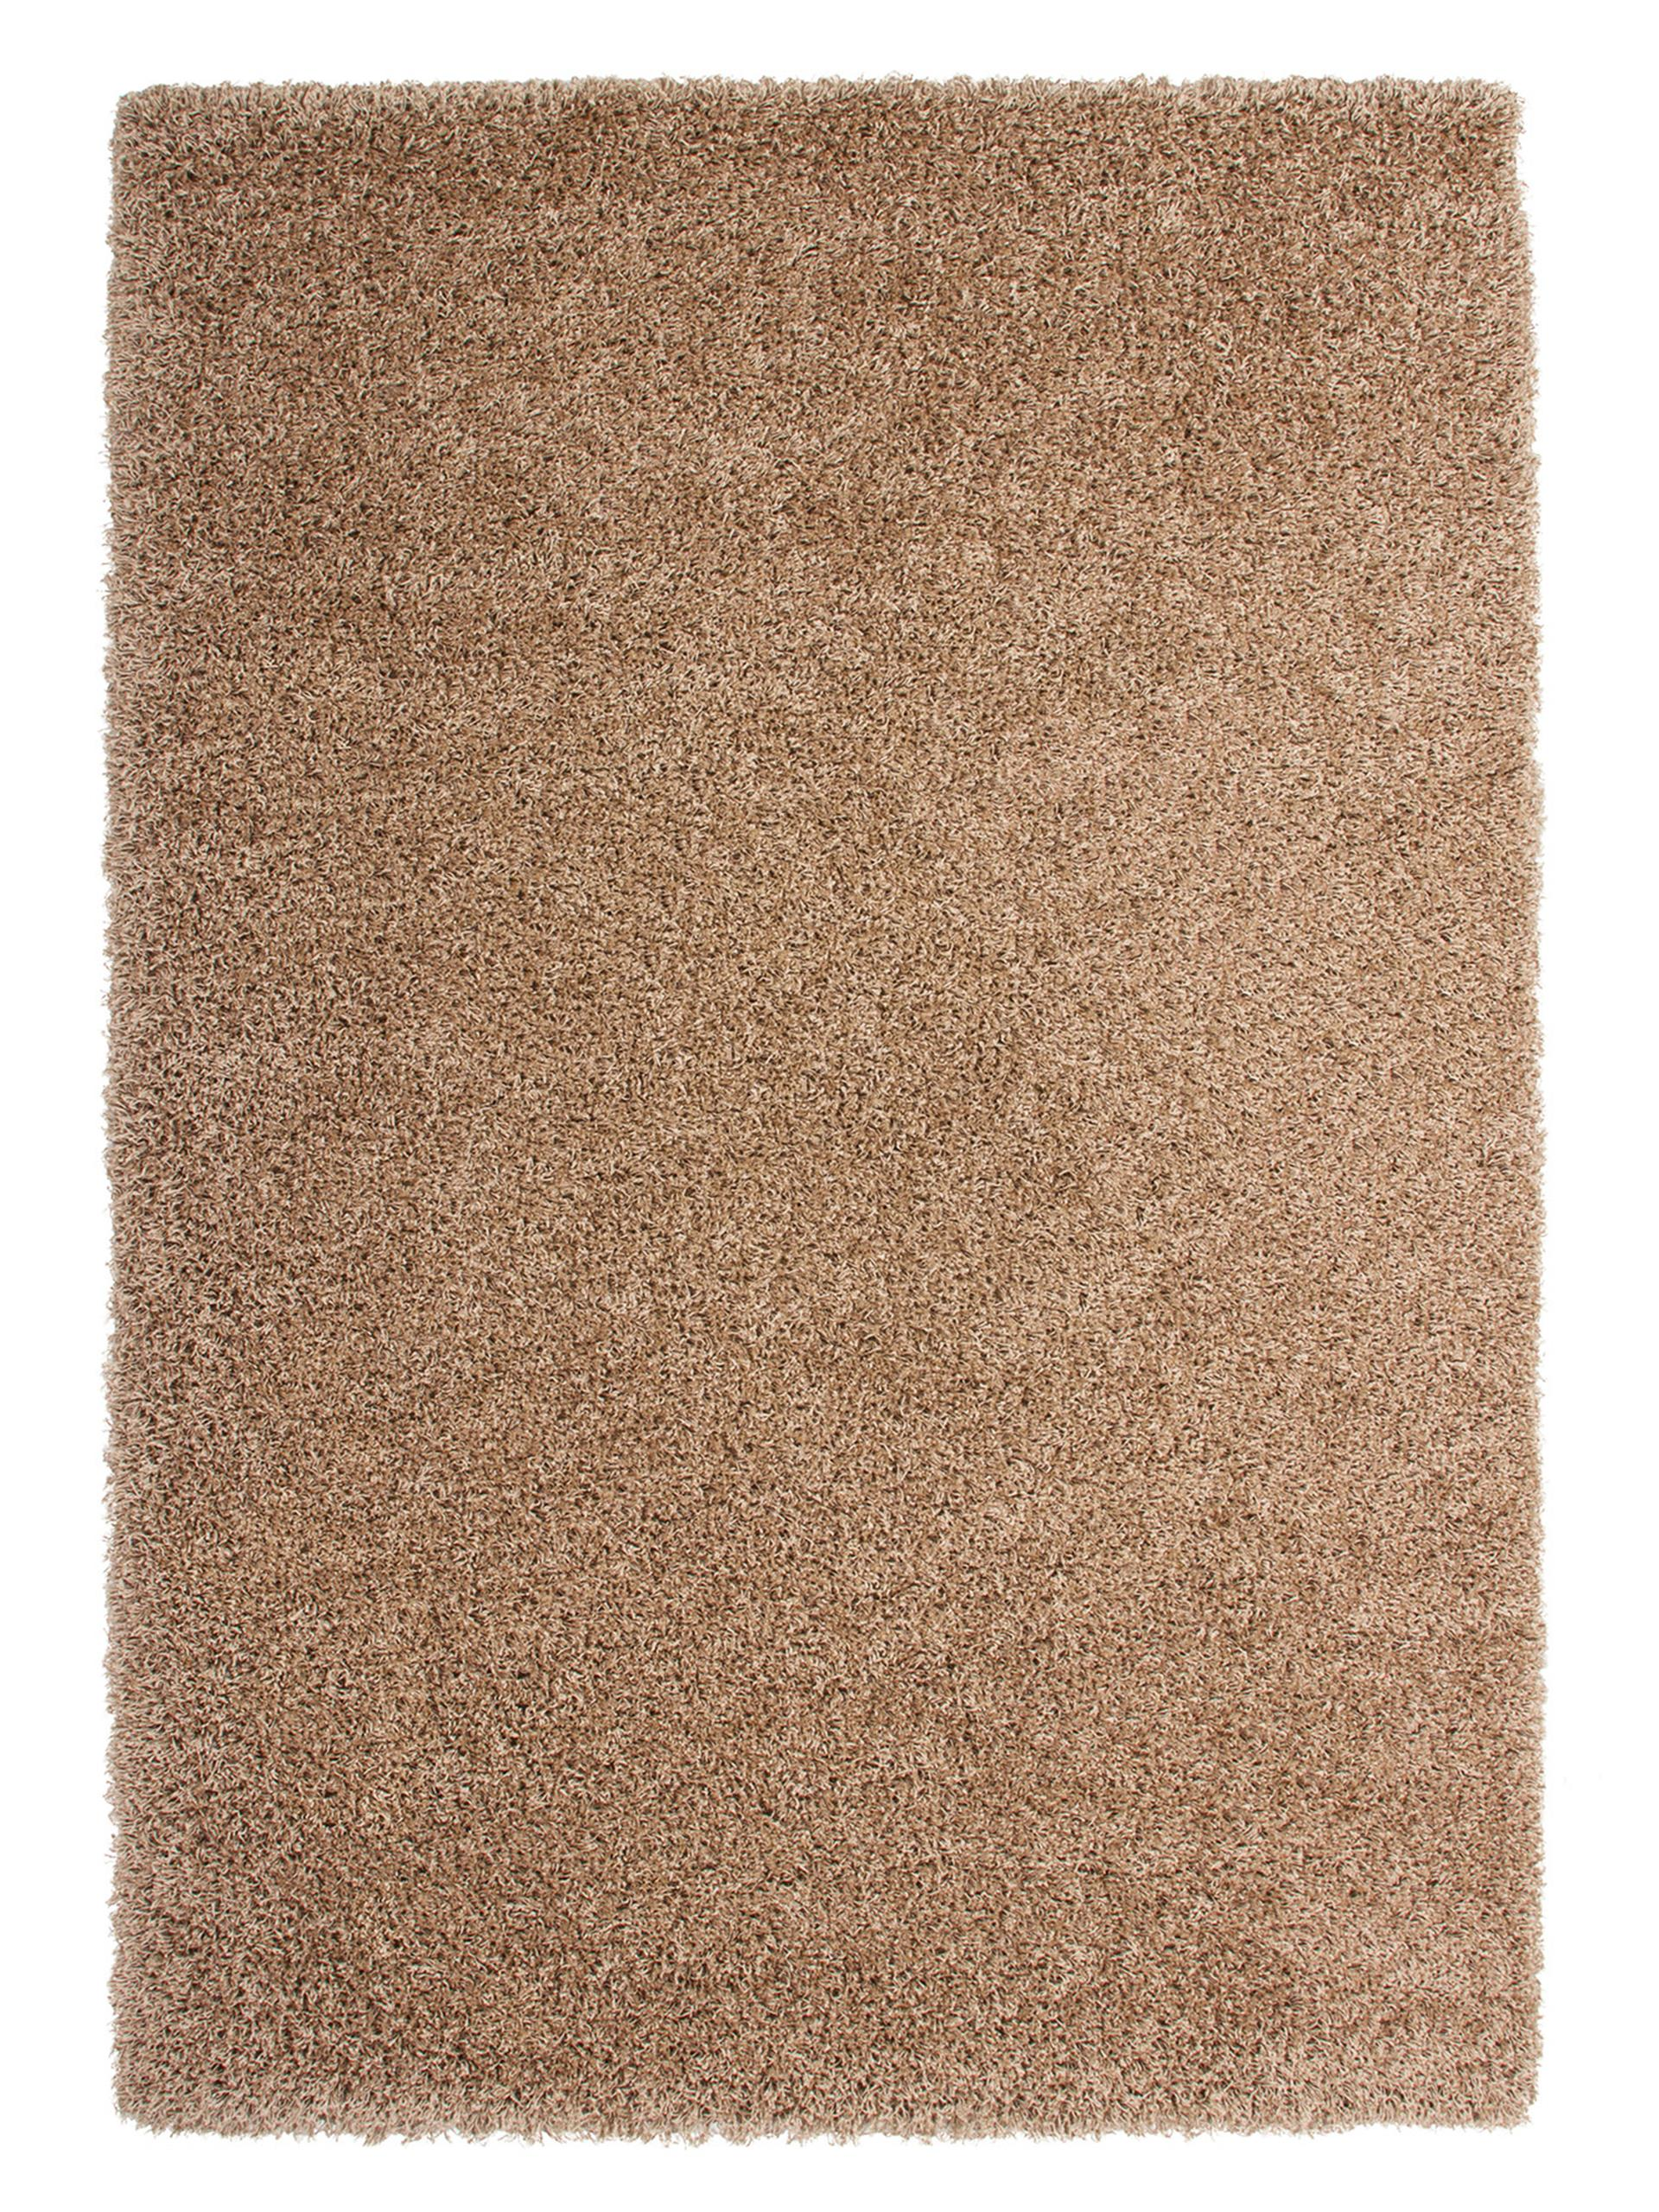 Hochflor Teppich Beige 160x230 Obsession Hochflor Shaggy Teppich Funky Langflor 10 Farben